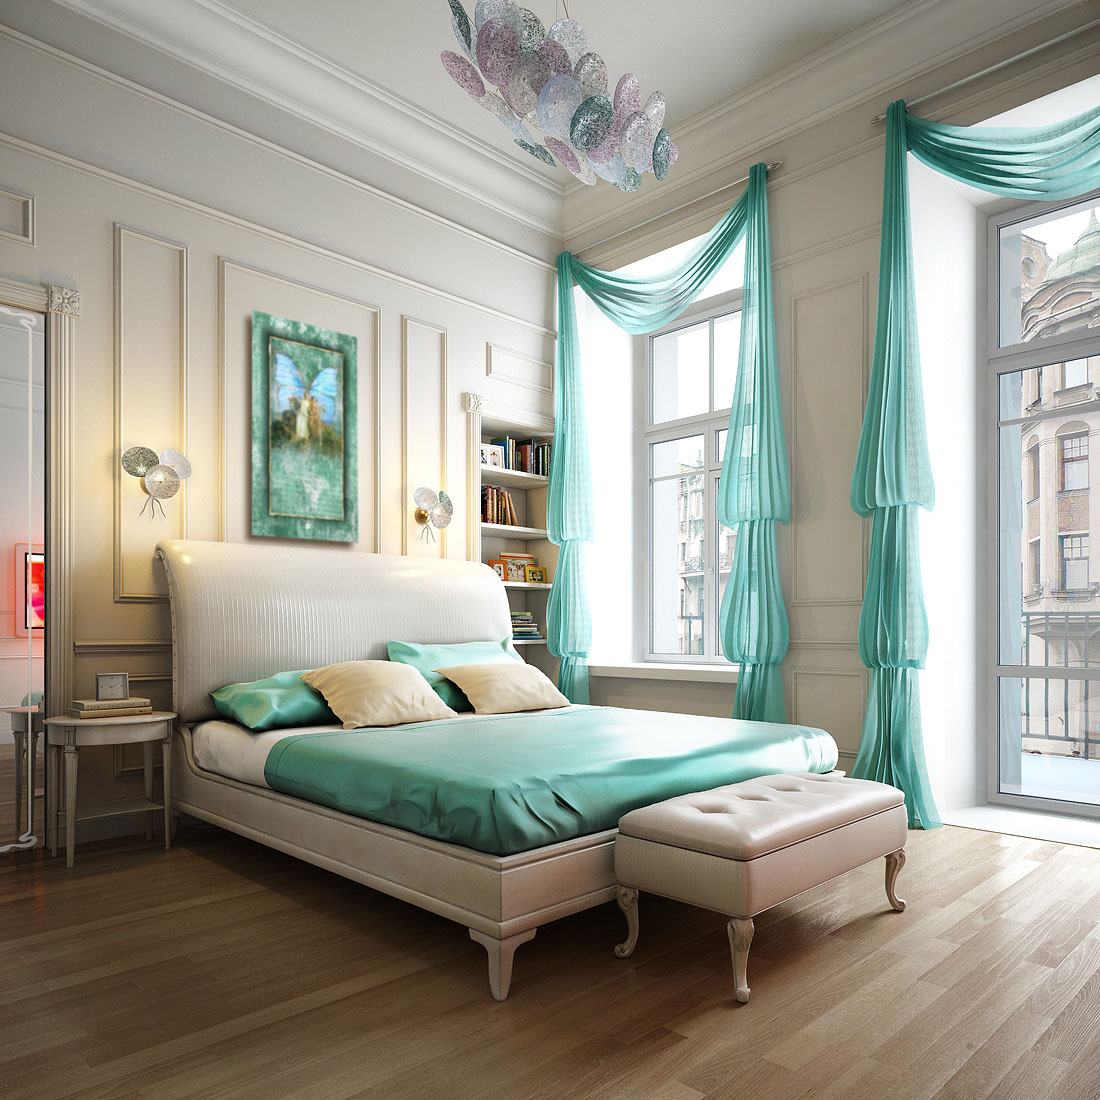 blue-bedroom-interior-design.jpg